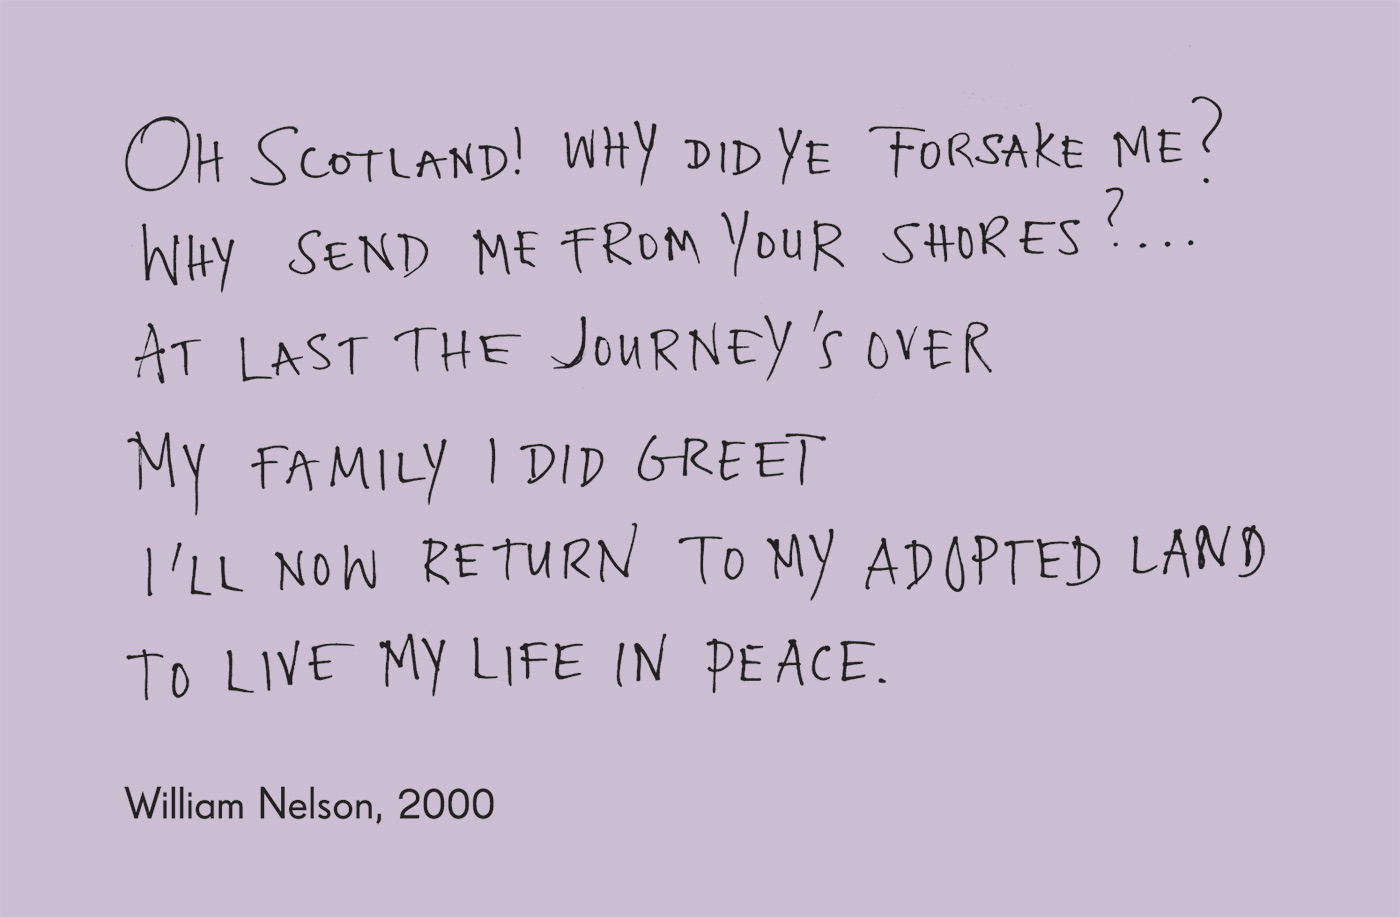 Exhibition graphic panel that reads: 'Oh Scotland! Why did ye forsake me? Why send me from your shores? ... At last the journey's over. My family I did greet. I'll now return to my adopted land. To live my life in peace.', attributed to 'William Nelson, 2000'. - click to view larger image